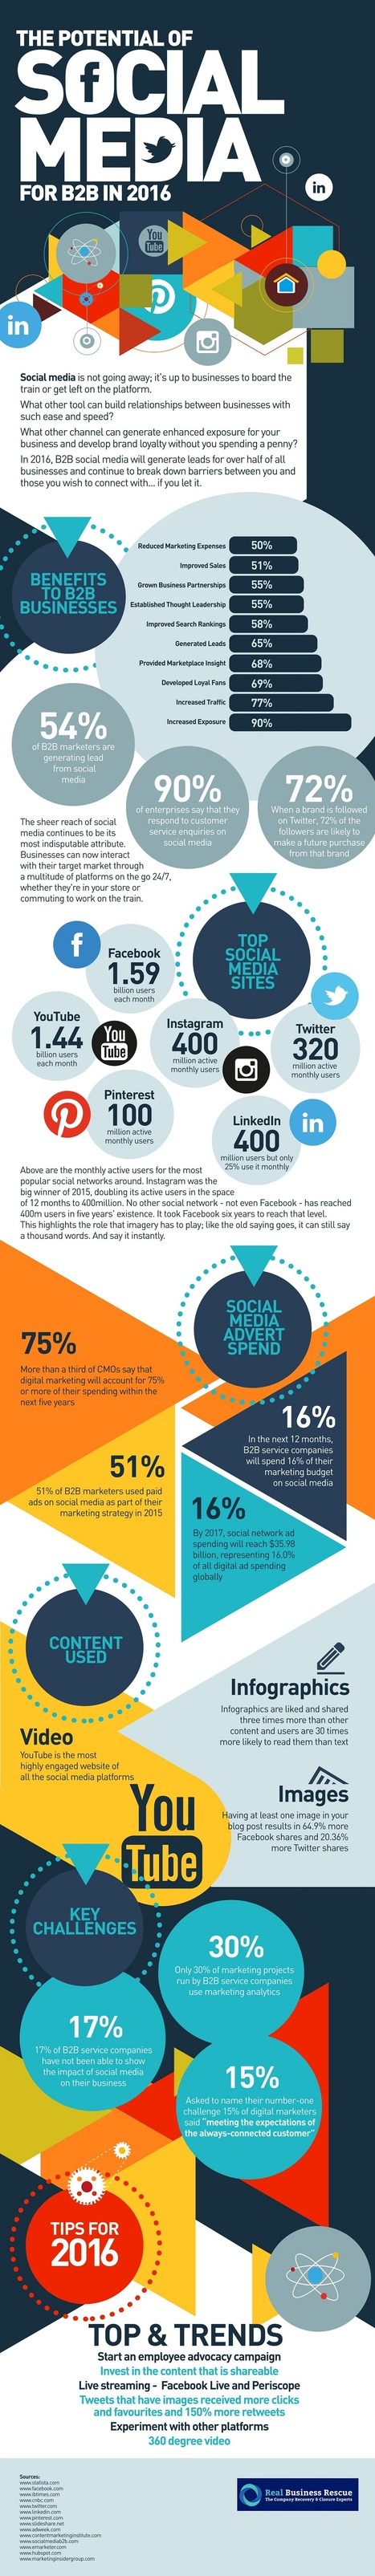 The Potential of Social Media for B2B in 2016 #Infographic | Social Media and other stuff | Scoop.it